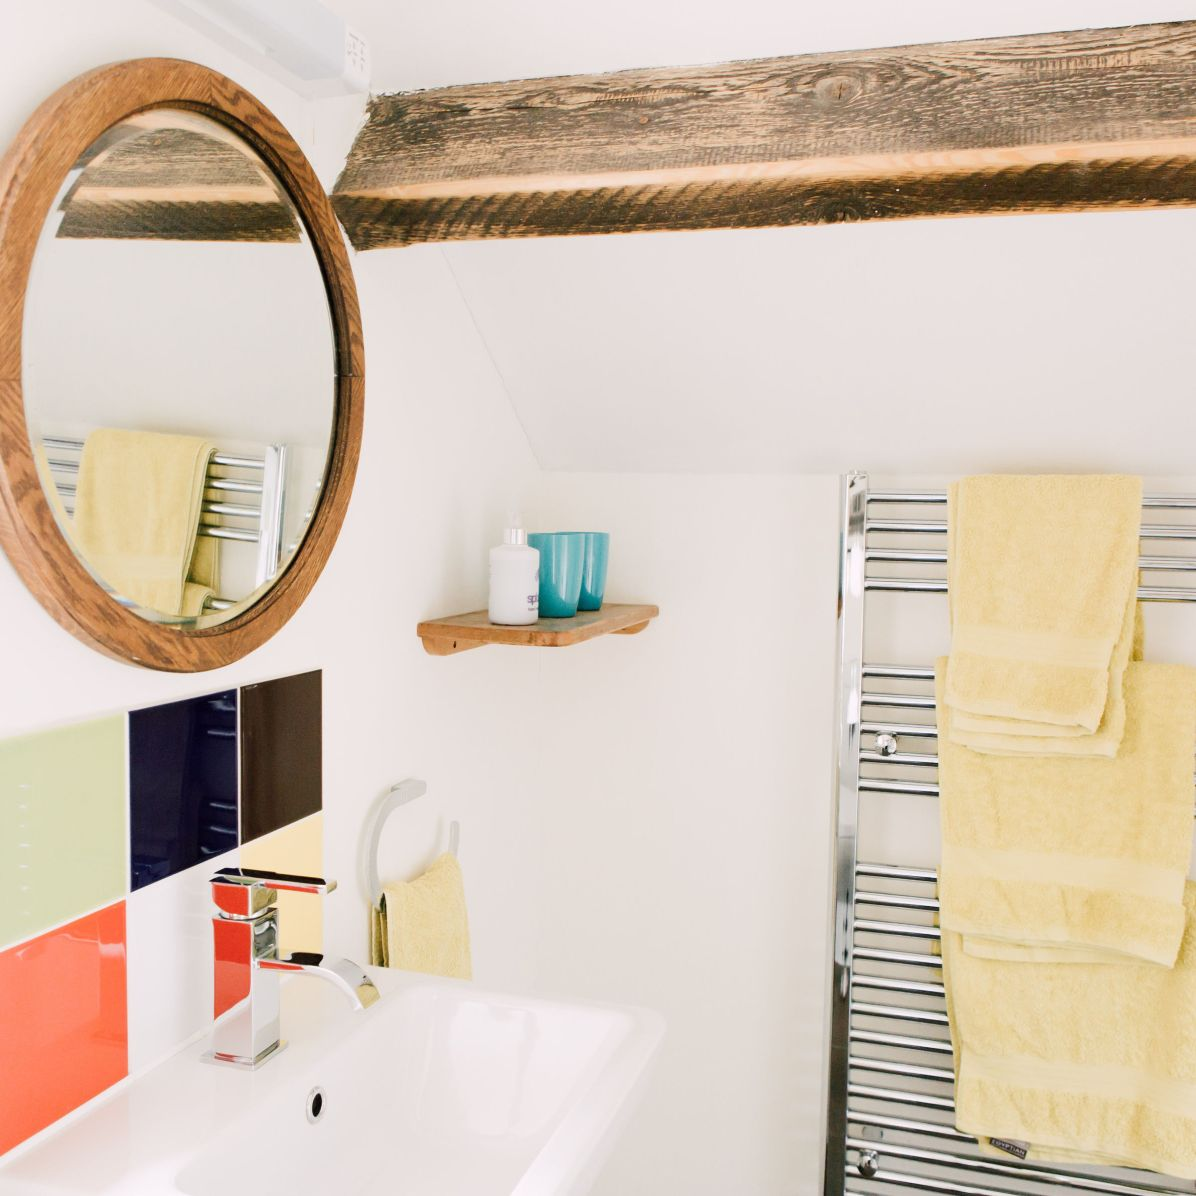 towel rail and sink